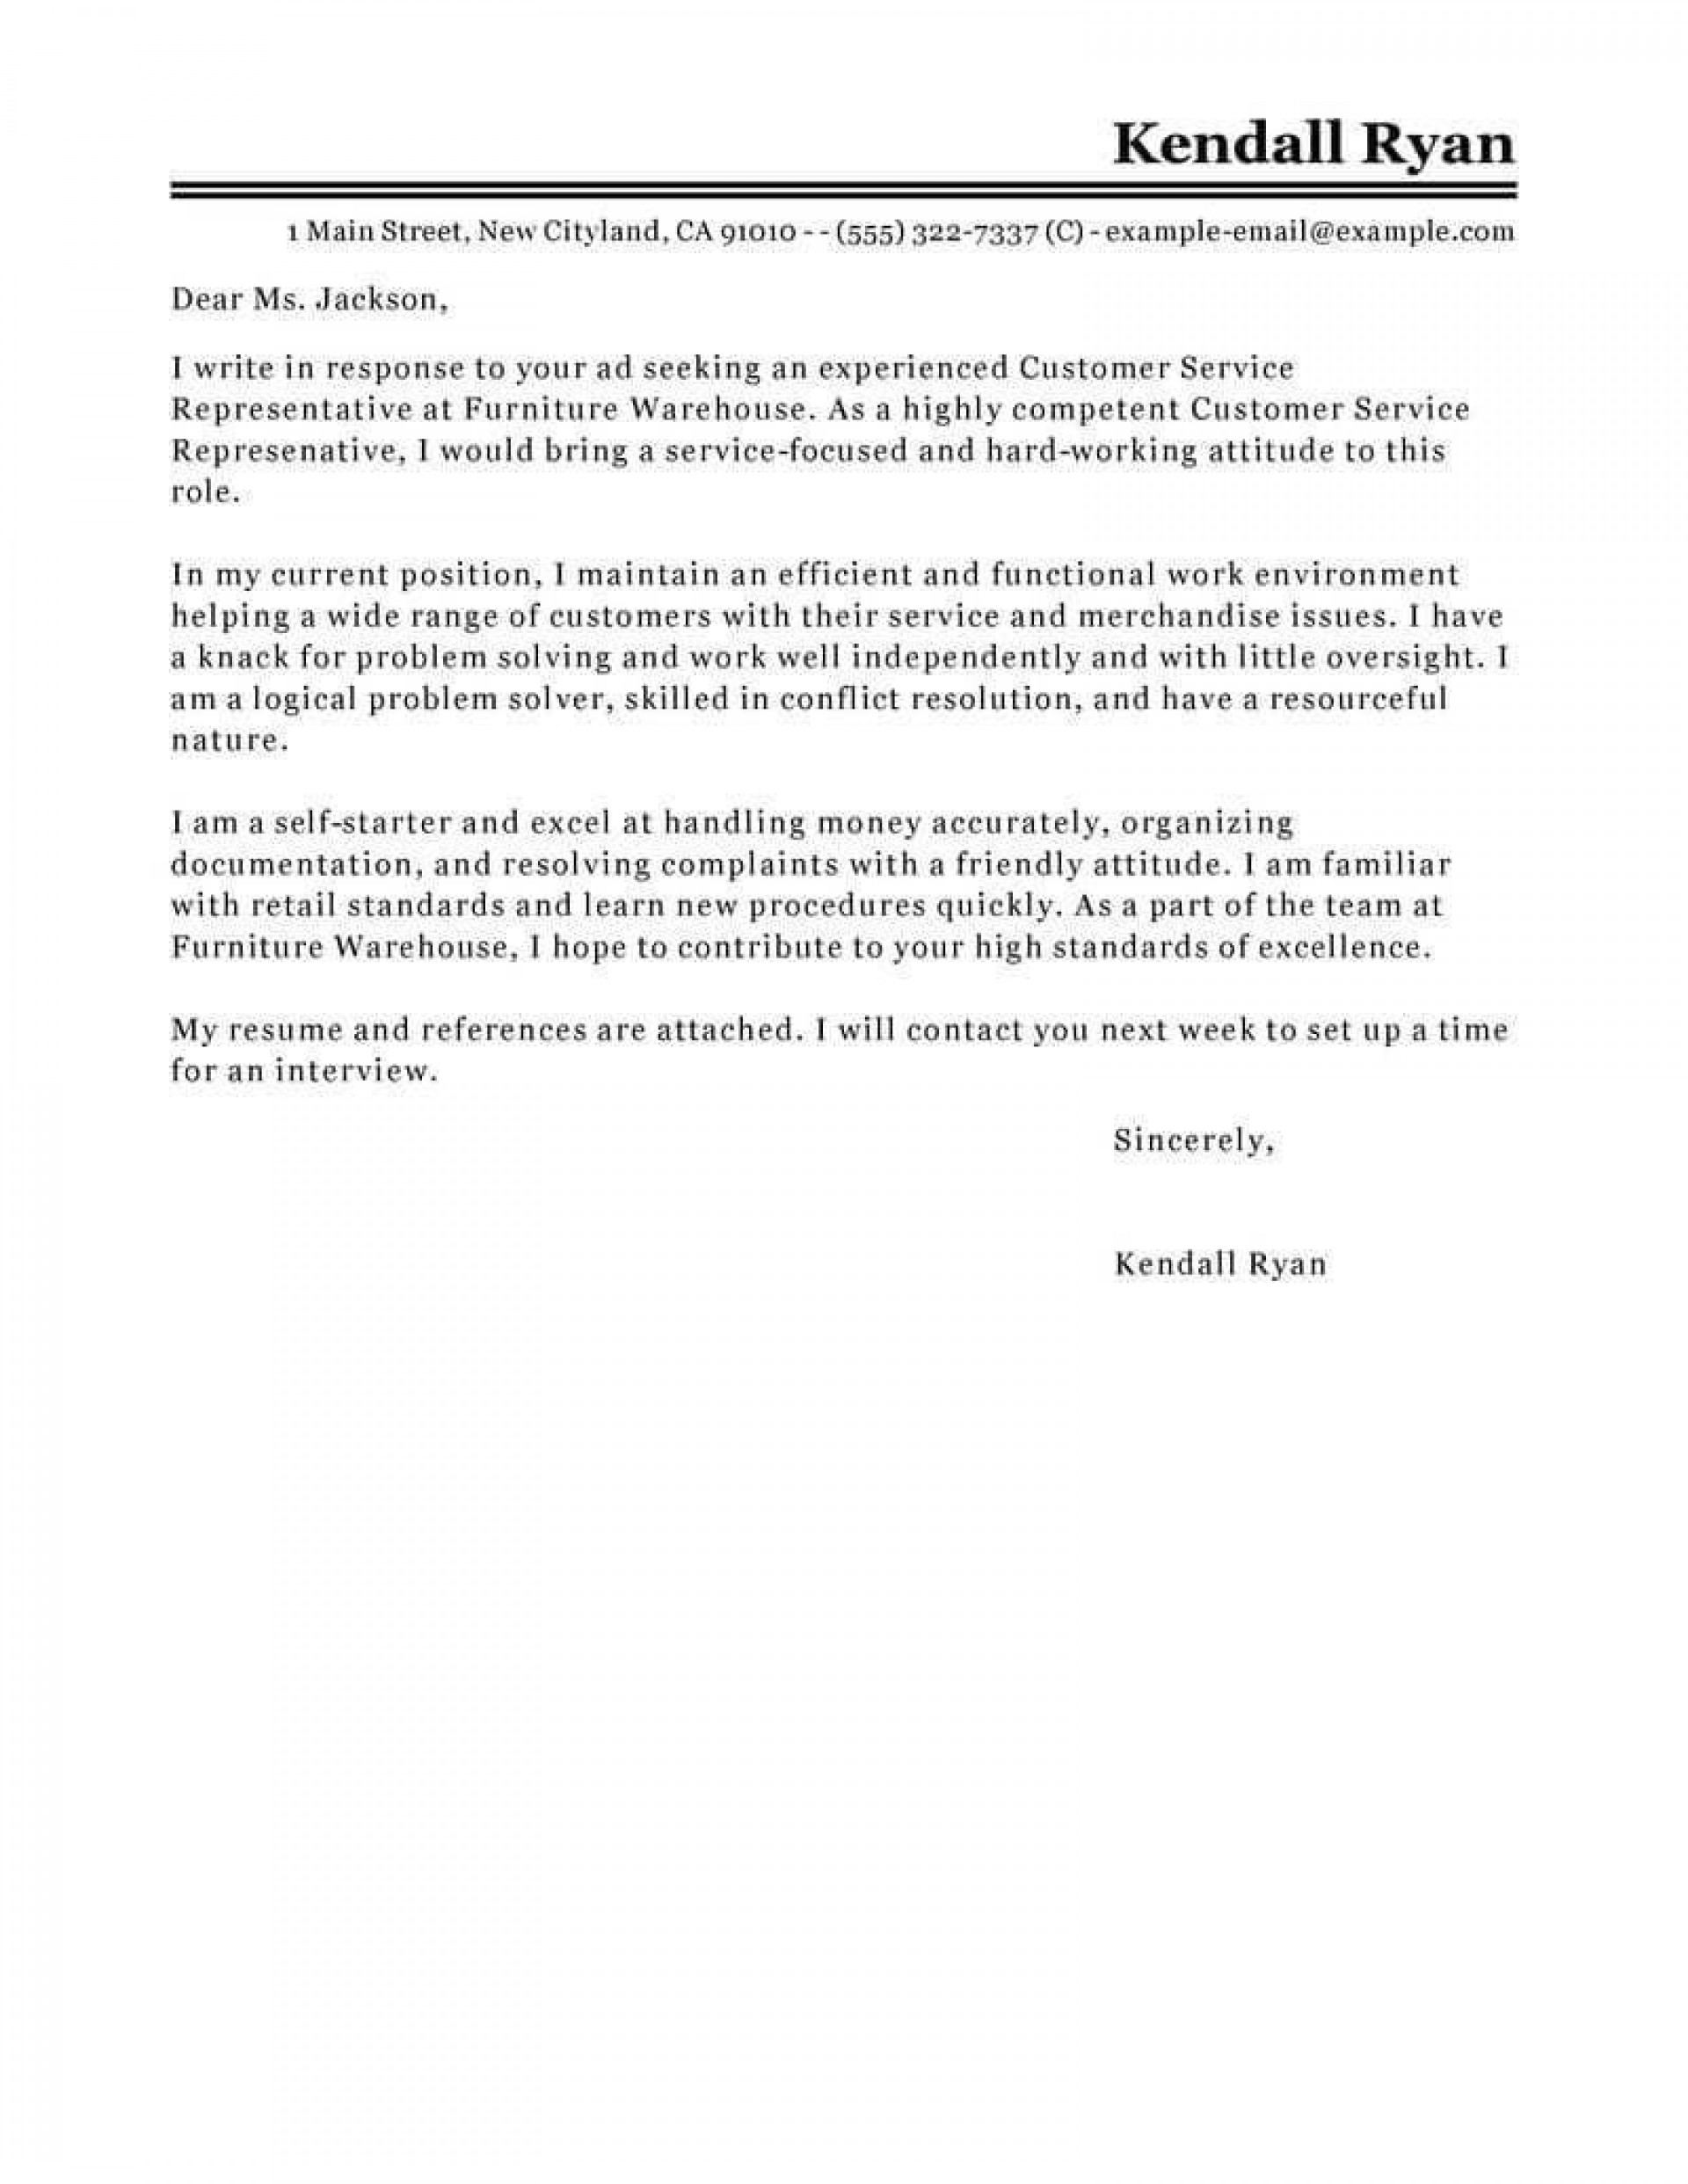 007 Striking Email Cover Letter Example For Customer Service Concept  Sample Representative1920